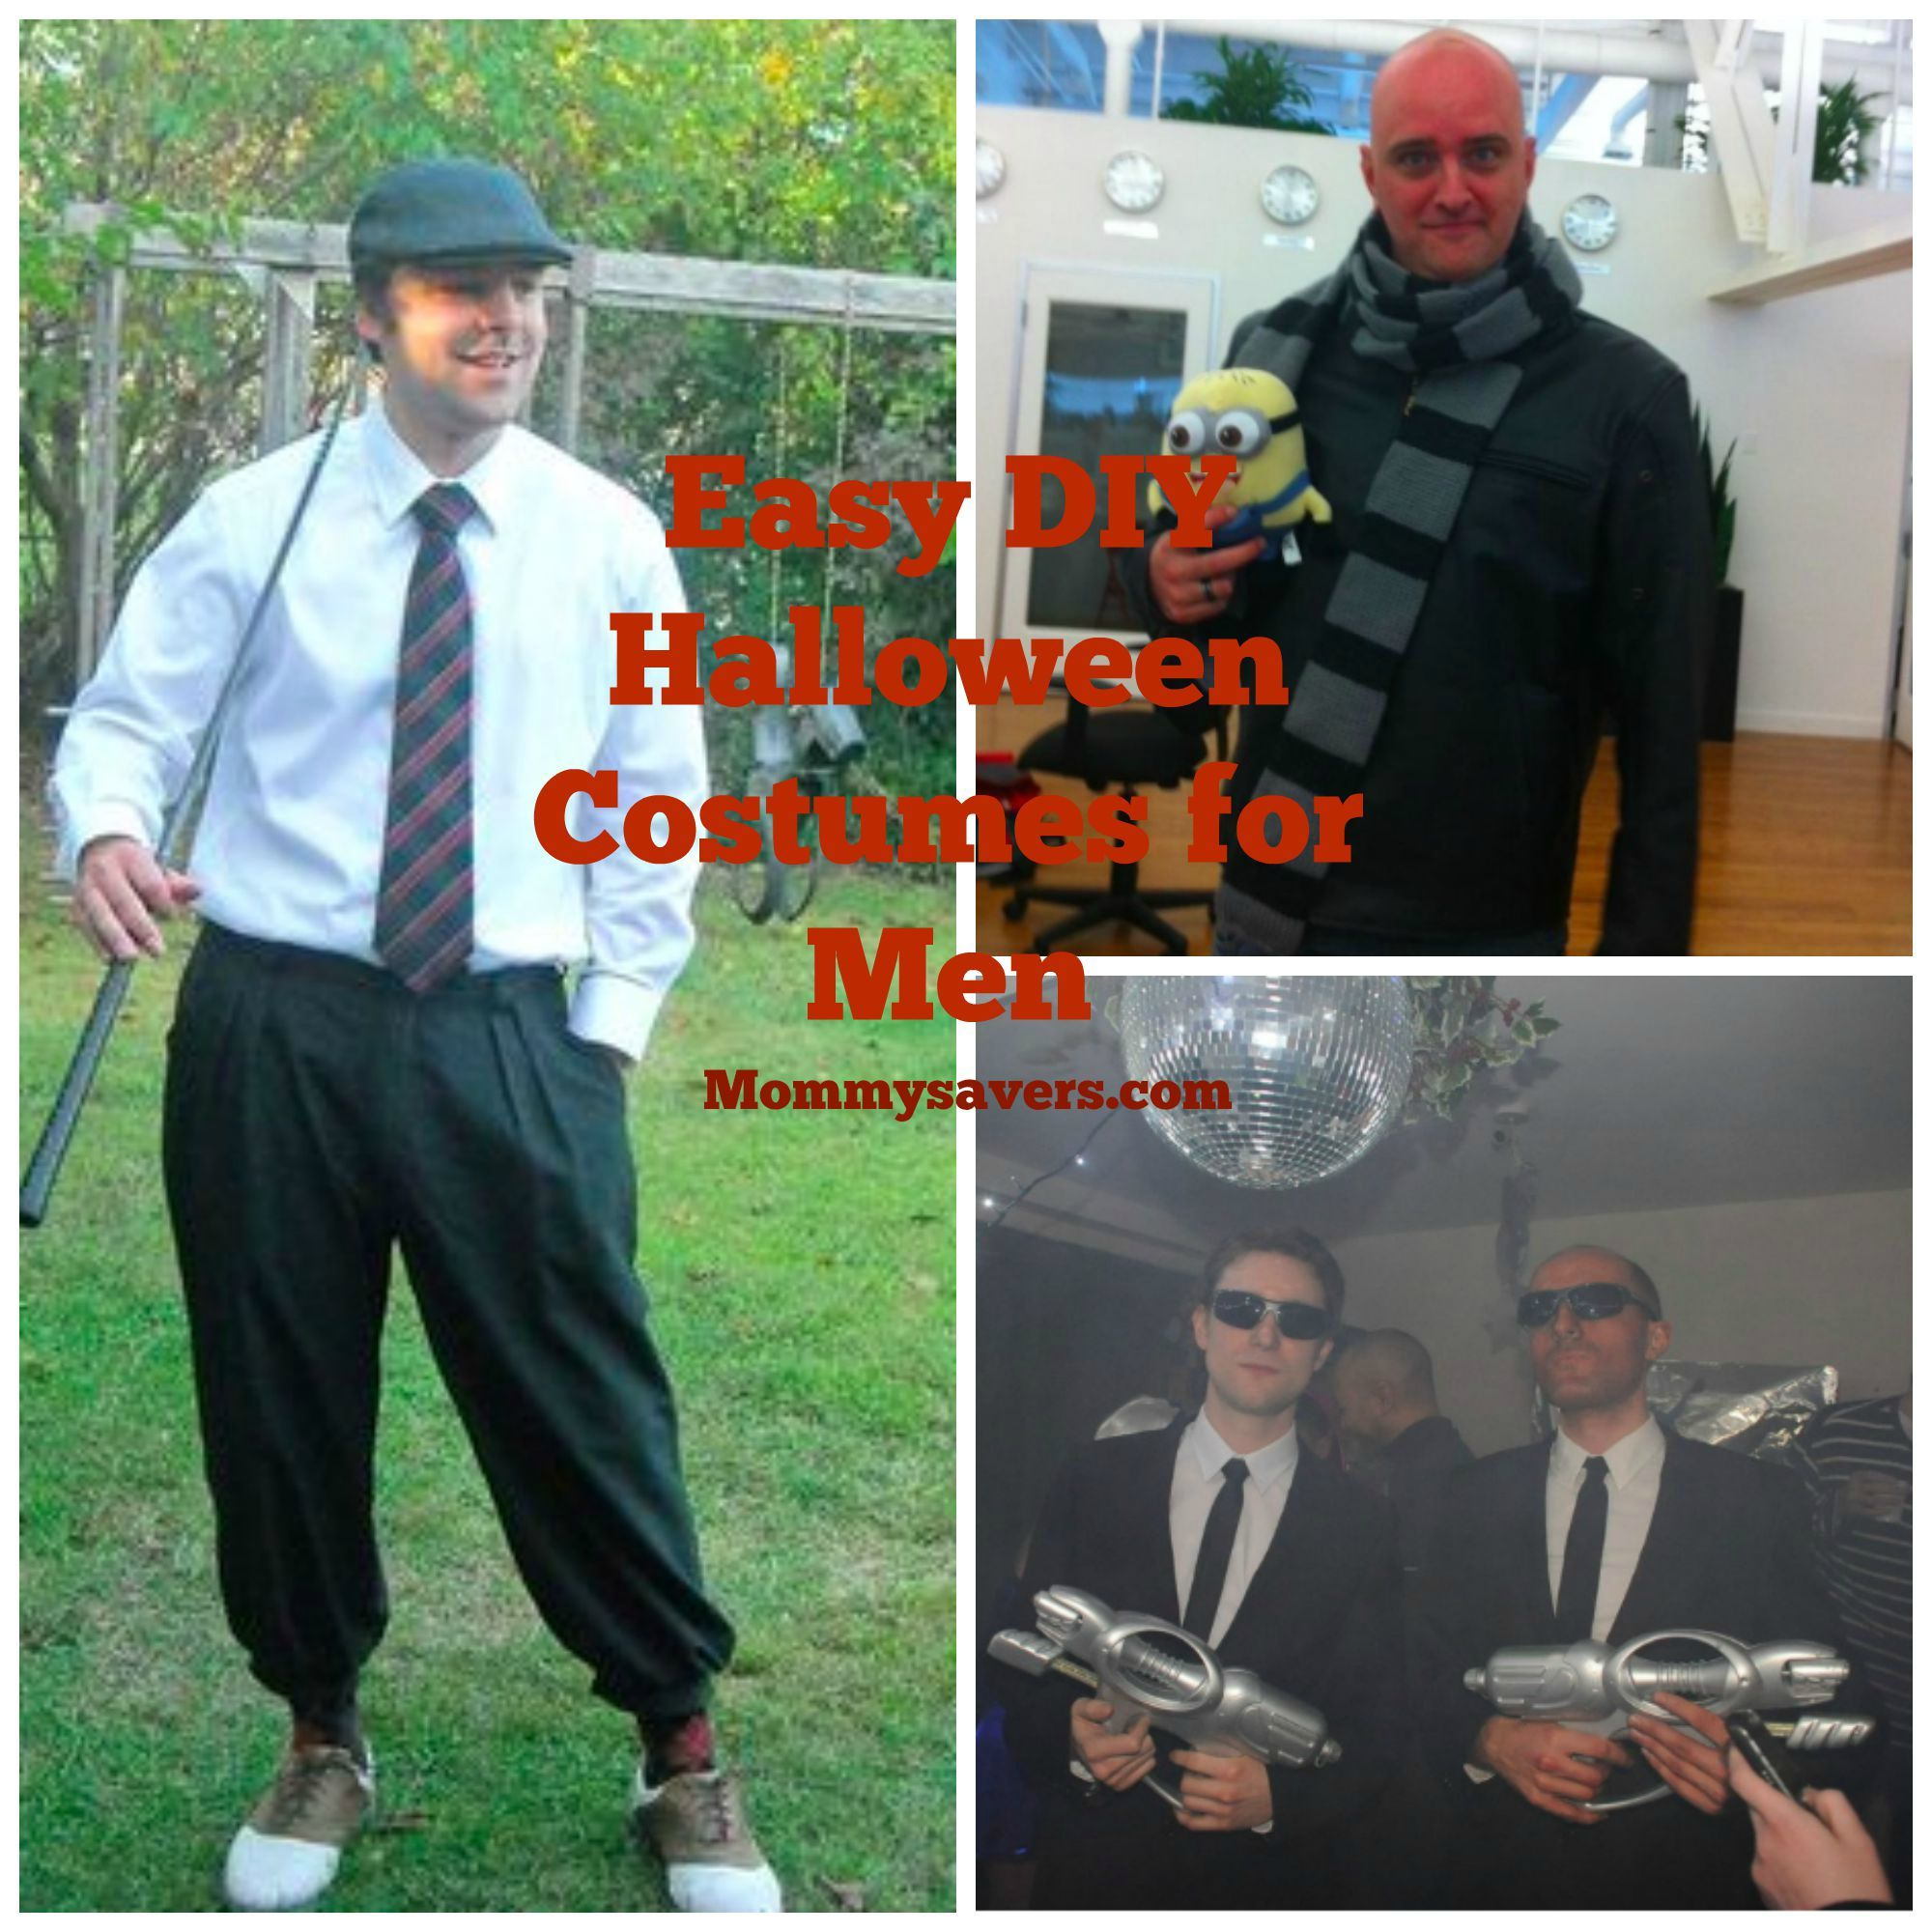 Diy easy halloween costume ideas for men fall favorites i have found that sometimes its hard to get men dressed up for halloween the costume better be clever cool and easy to create solutioingenieria Images